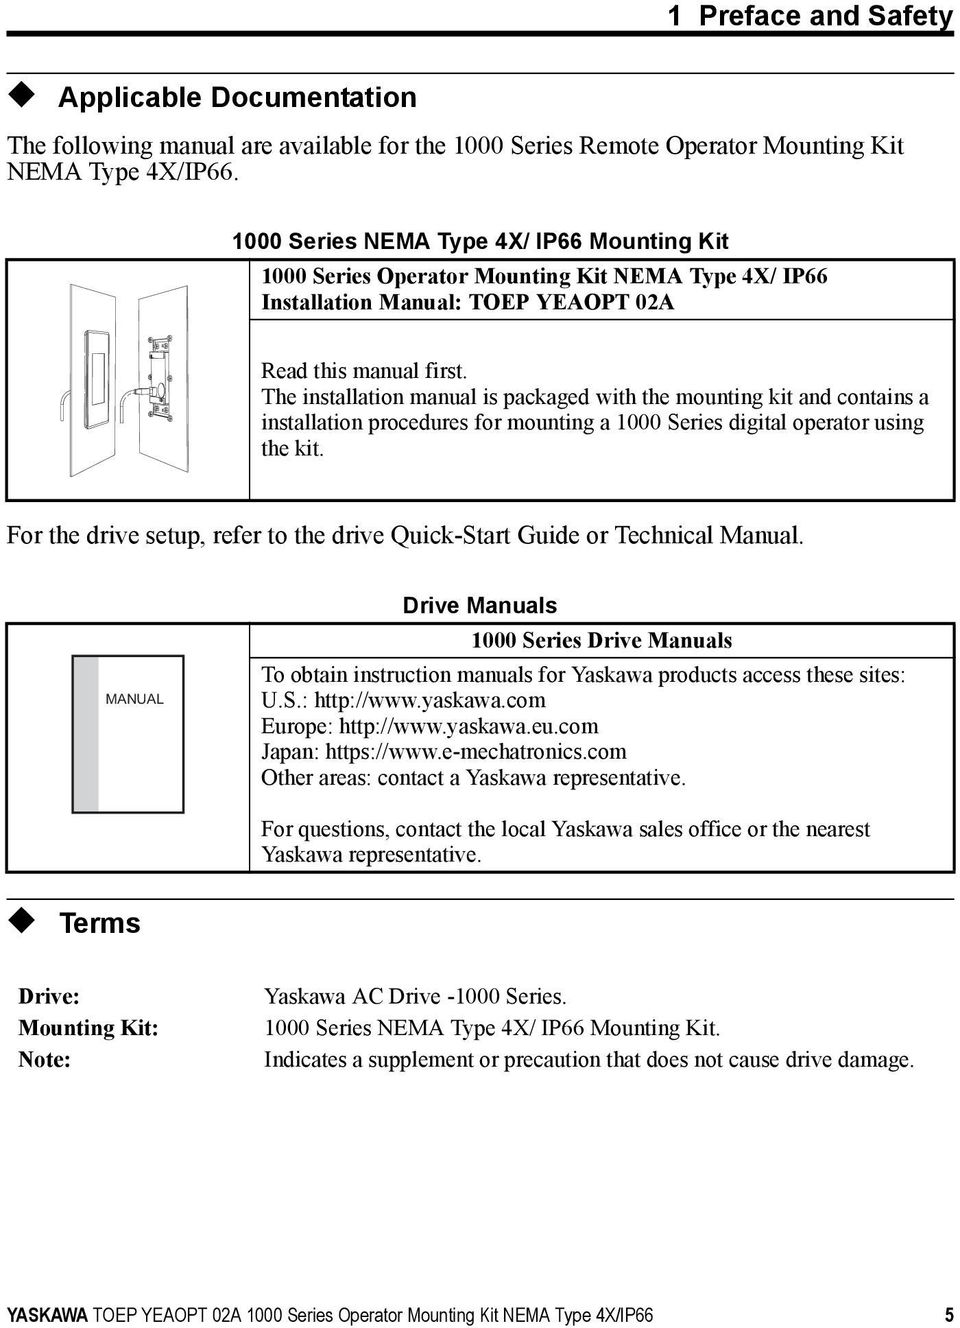 Operator Mounting Kit Pdf Printed Circuit Board Repair On Allen Bradley Magnetek Yaskawa The Installation Manual Is Packaged With And Contains A Procedures For